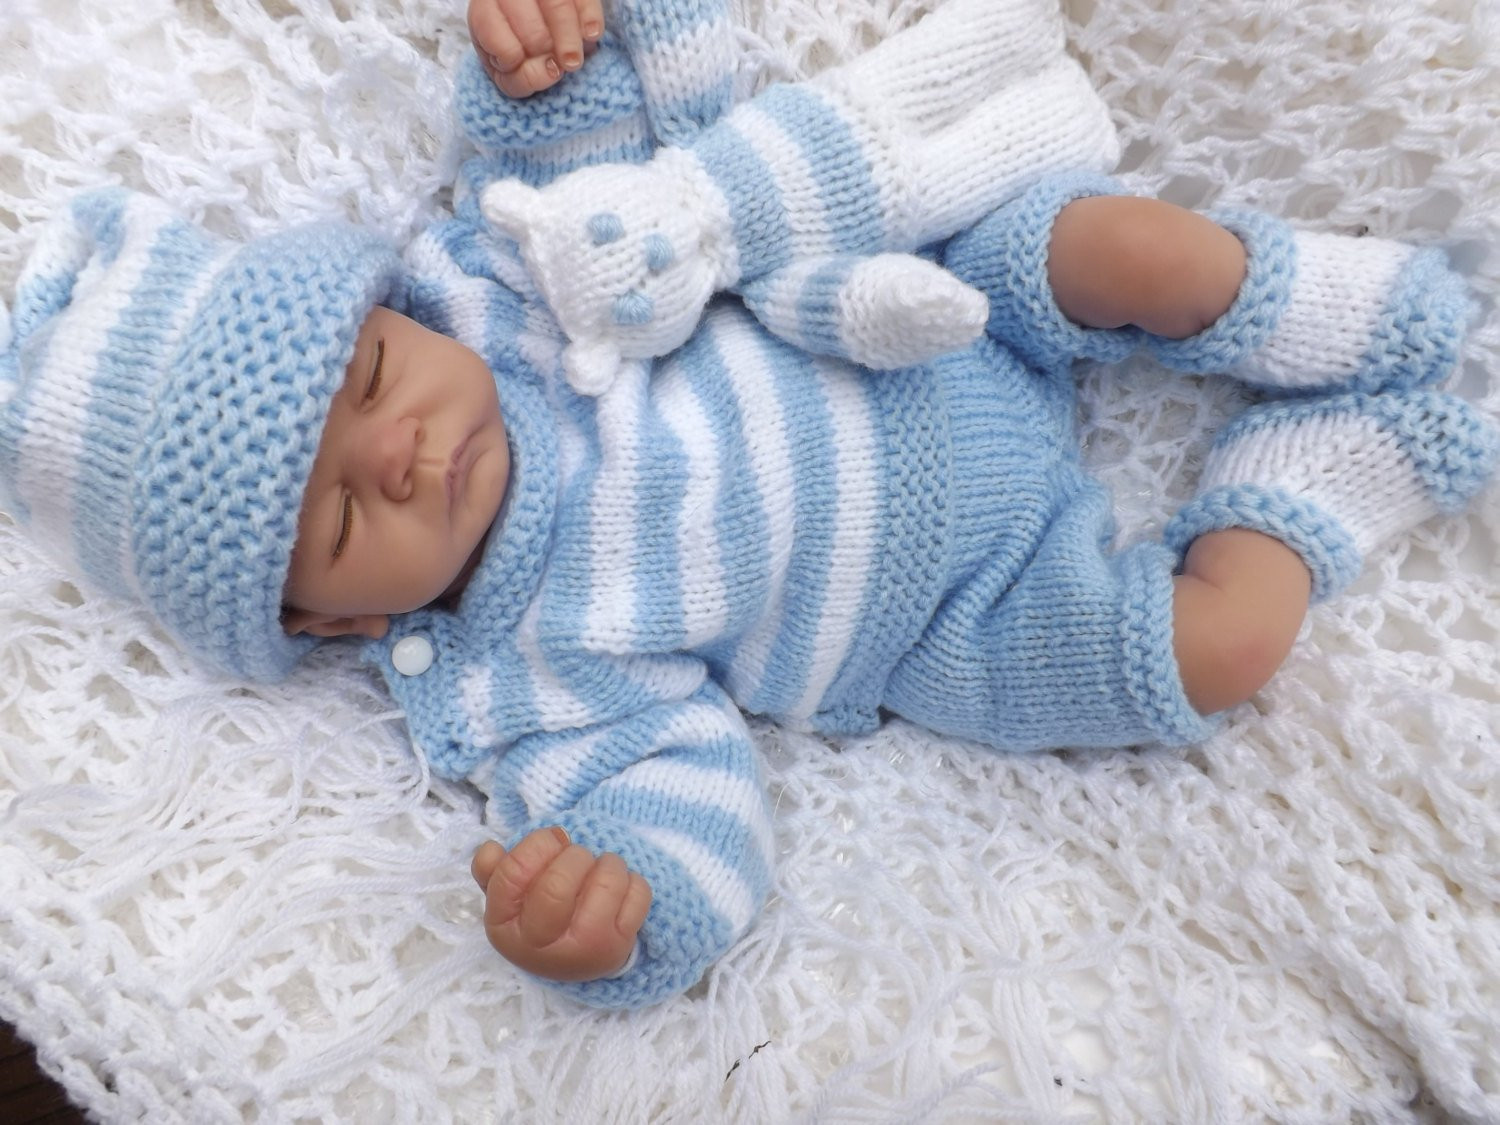 Knitting for Newborns Unique Baby Knitting Pattern Striped Sweater Pants Hat Booties Of Awesome 41 Images Knitting for Newborns